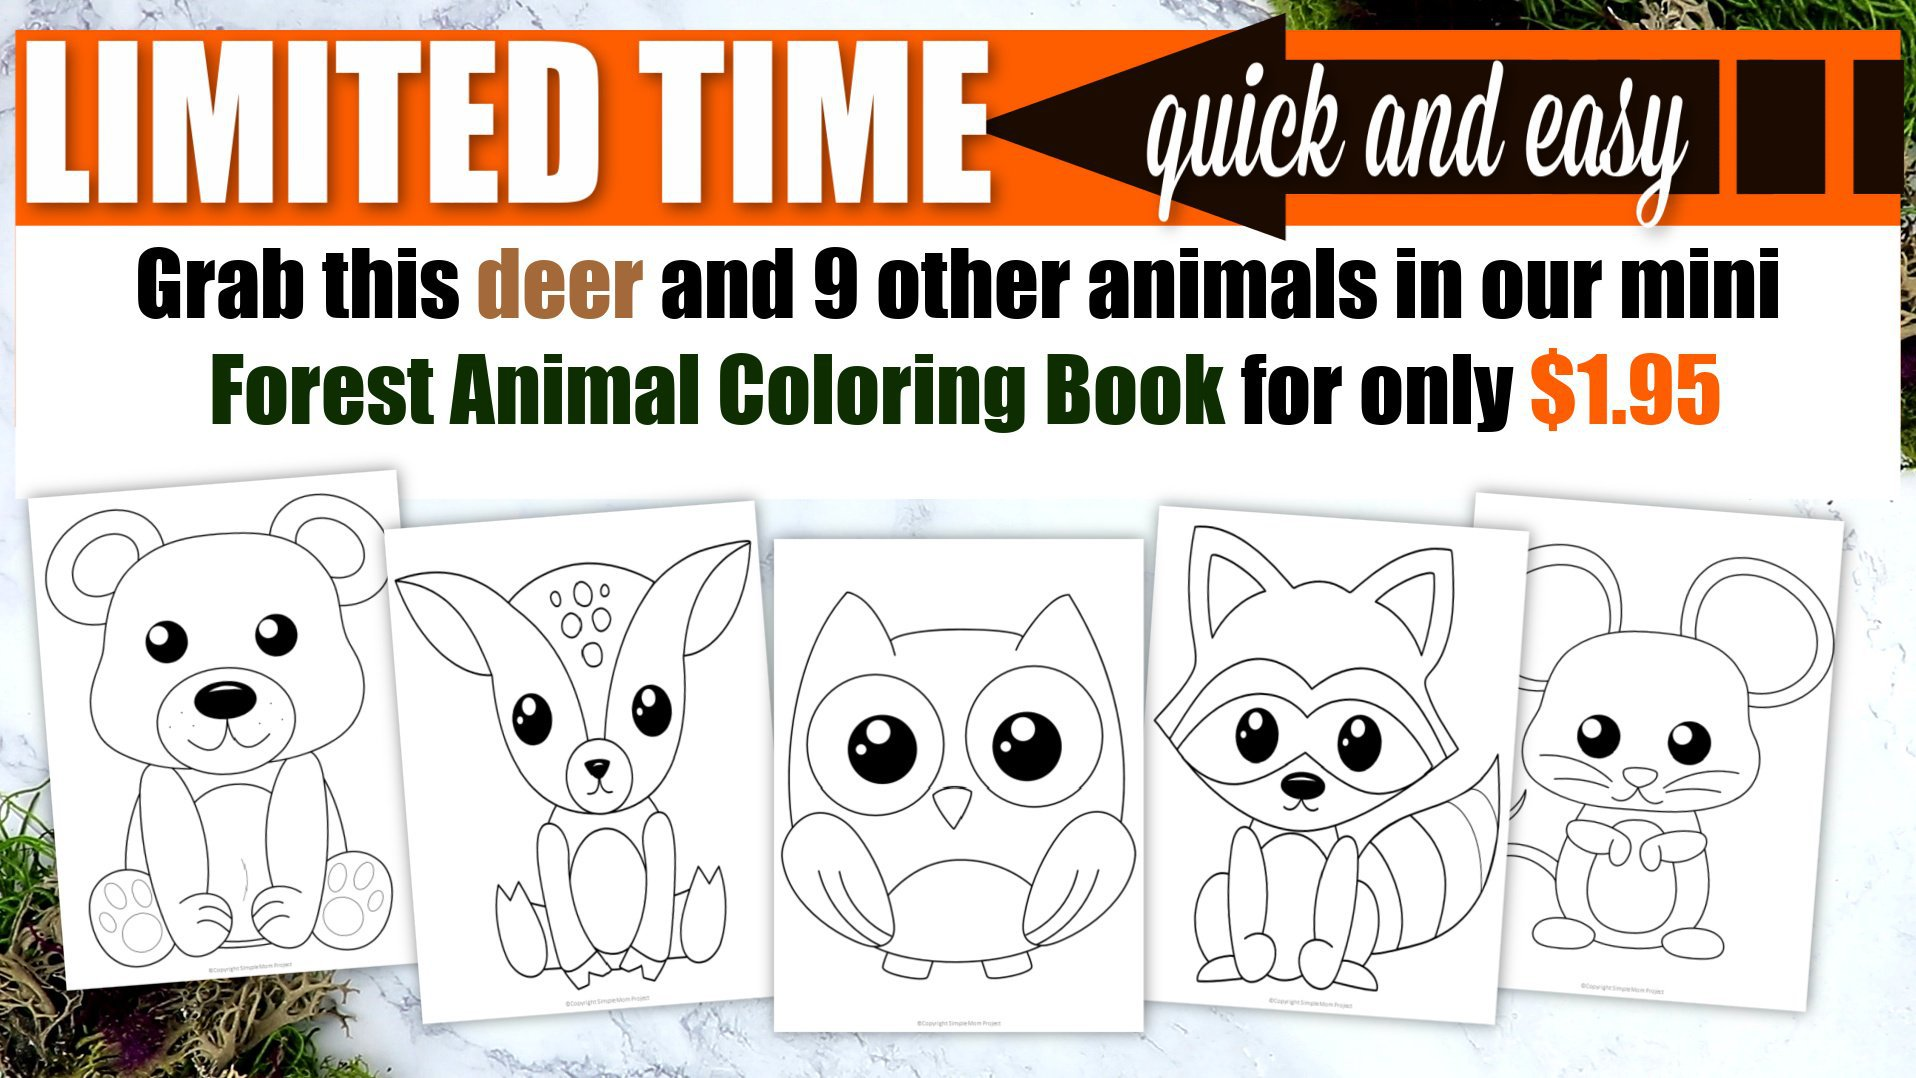 Printable Woodland Forest deer Coloring Page for Kids Preschoolers Toddlers and kindergartners